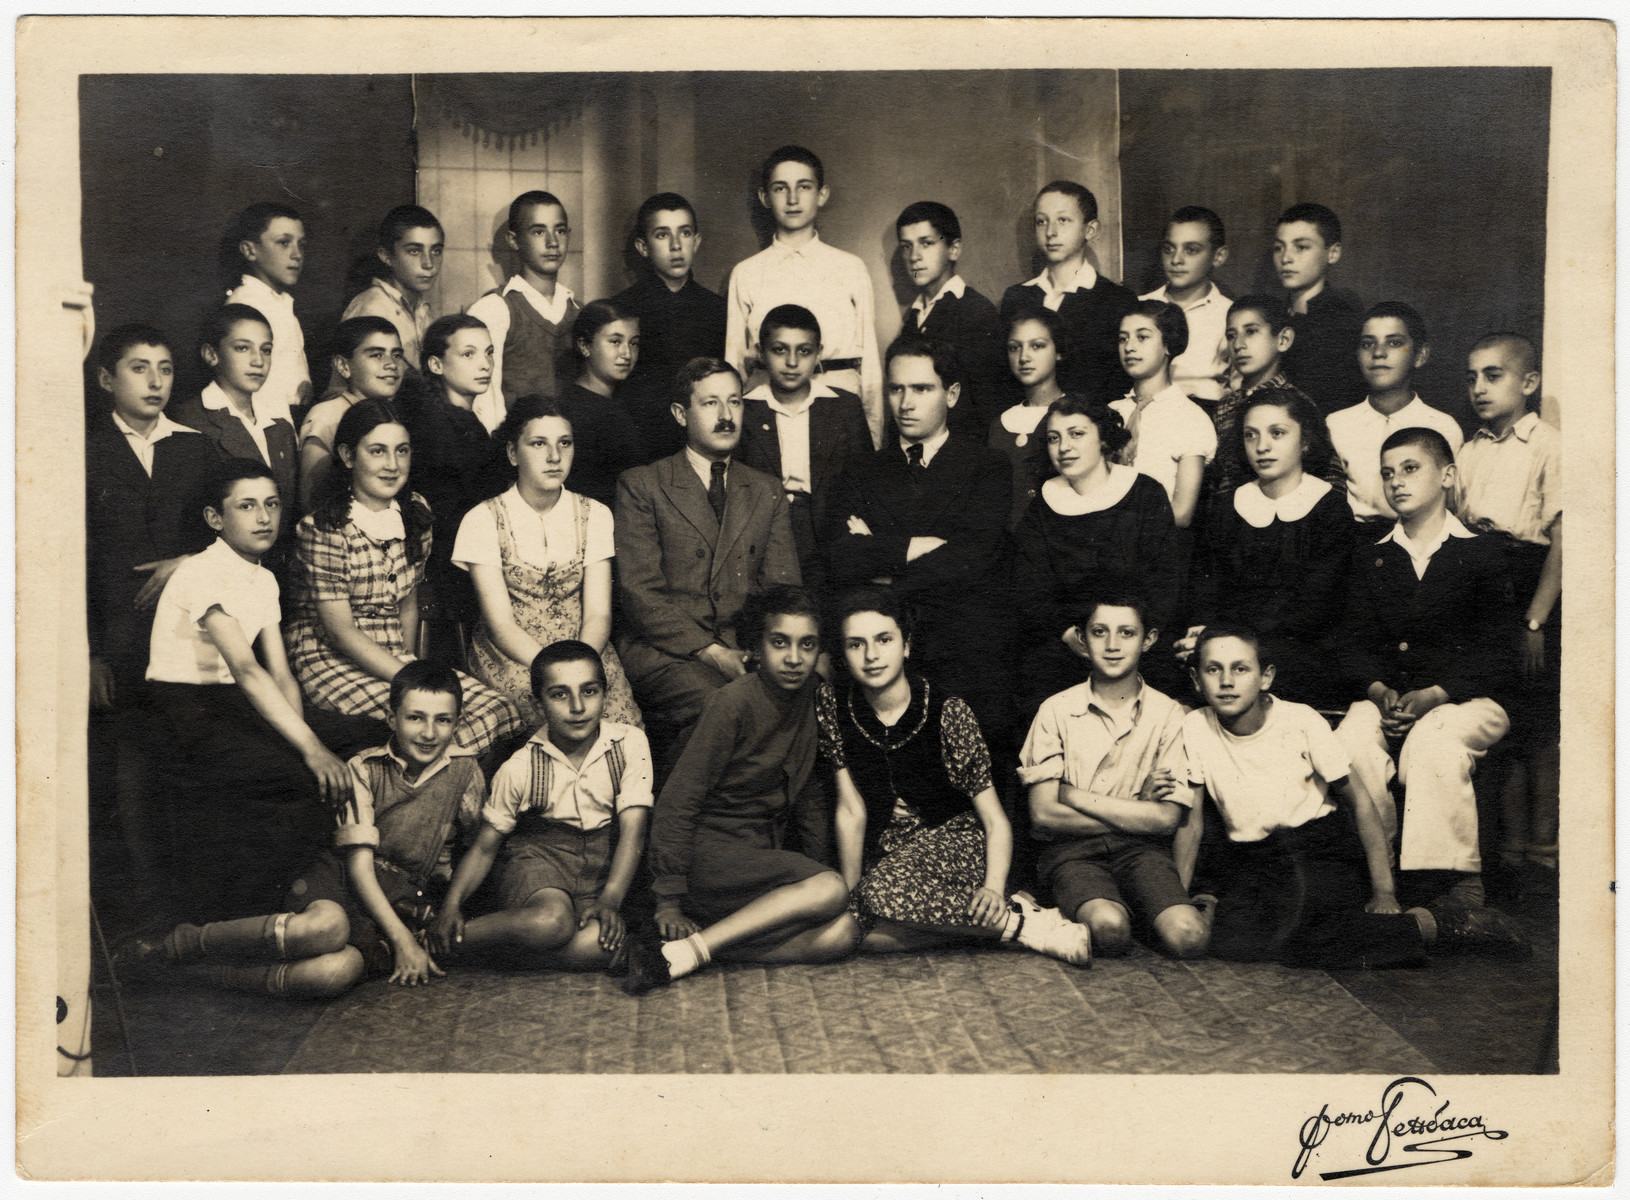 Class portrait of the Hebrew School in Sofia.  David Farhi is seated on the far right.  The principal Cohen is seated in the center with a mustache.